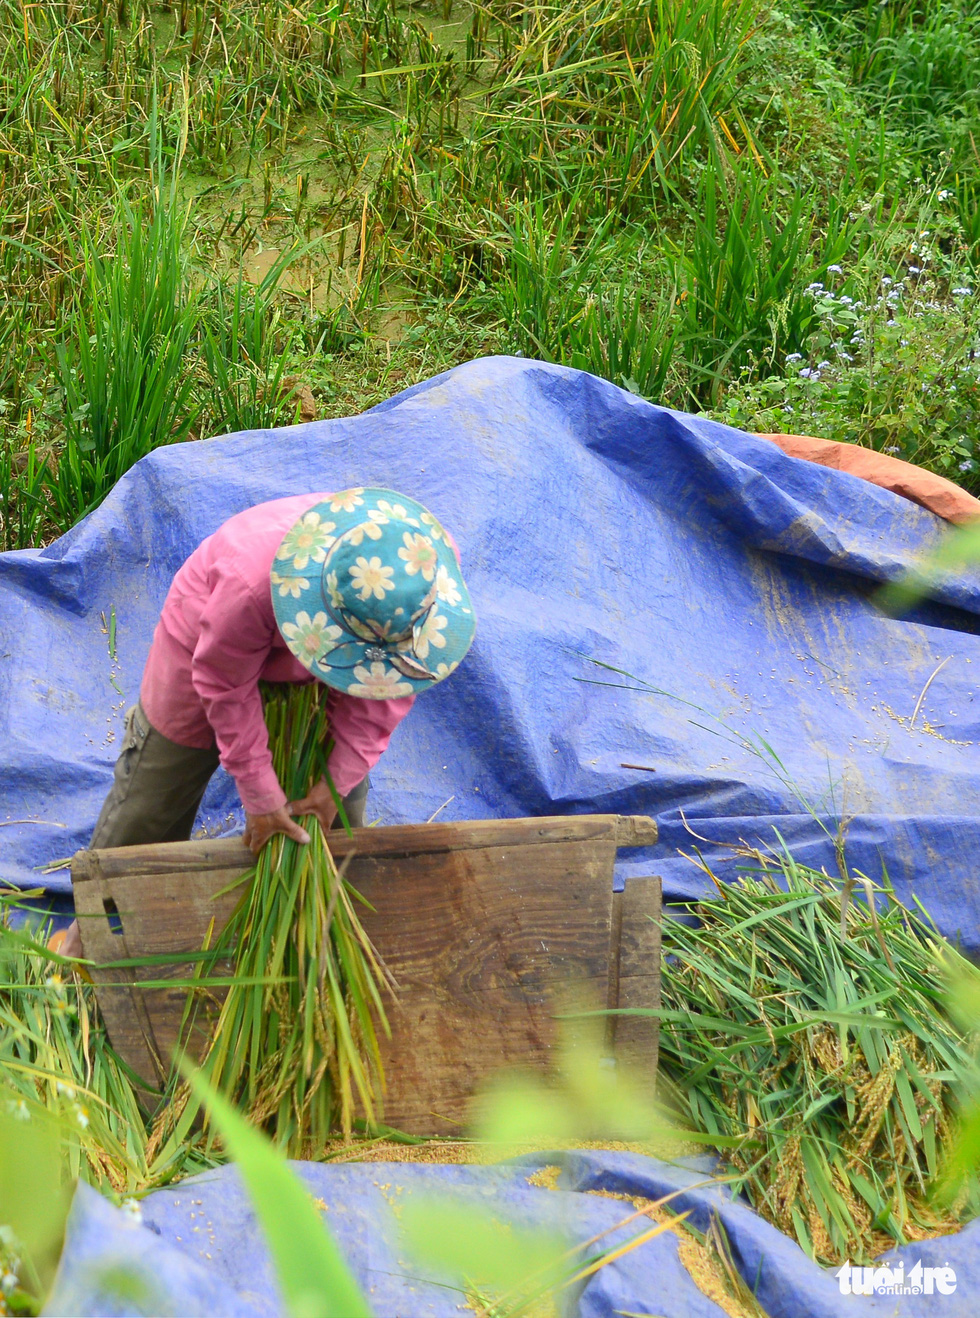 A farmer threshes rice in this photo taken in Y Ti Commune of Lao Cai Province. Photo: Nguyen Duy / Tuoi Tre